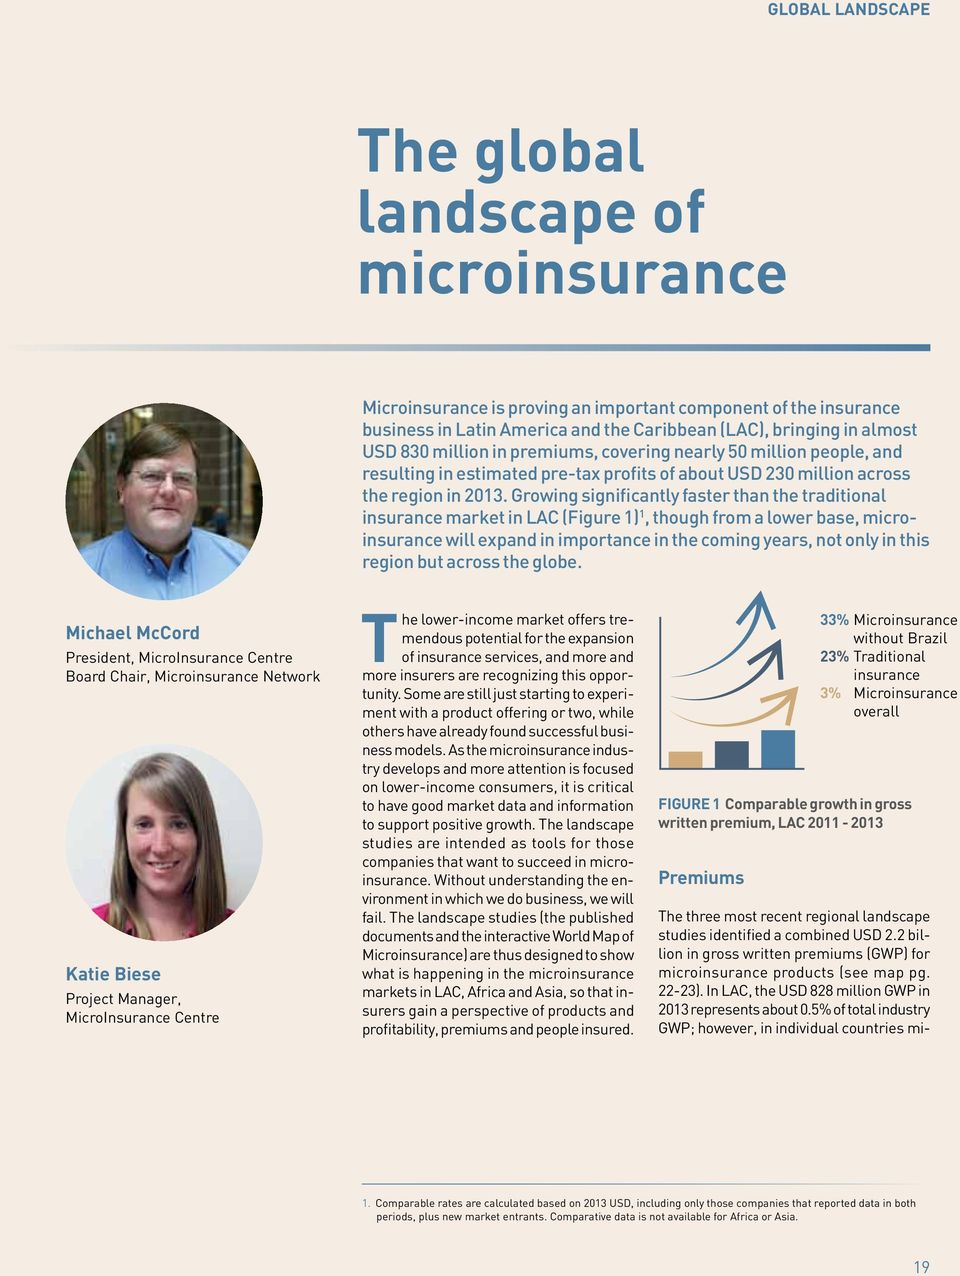 Growing significantly faster than the traditional insurance market in LAC (Figure 1) 1, though from a lower base, microinsurance will expand in importance in the coming years, not only in this region